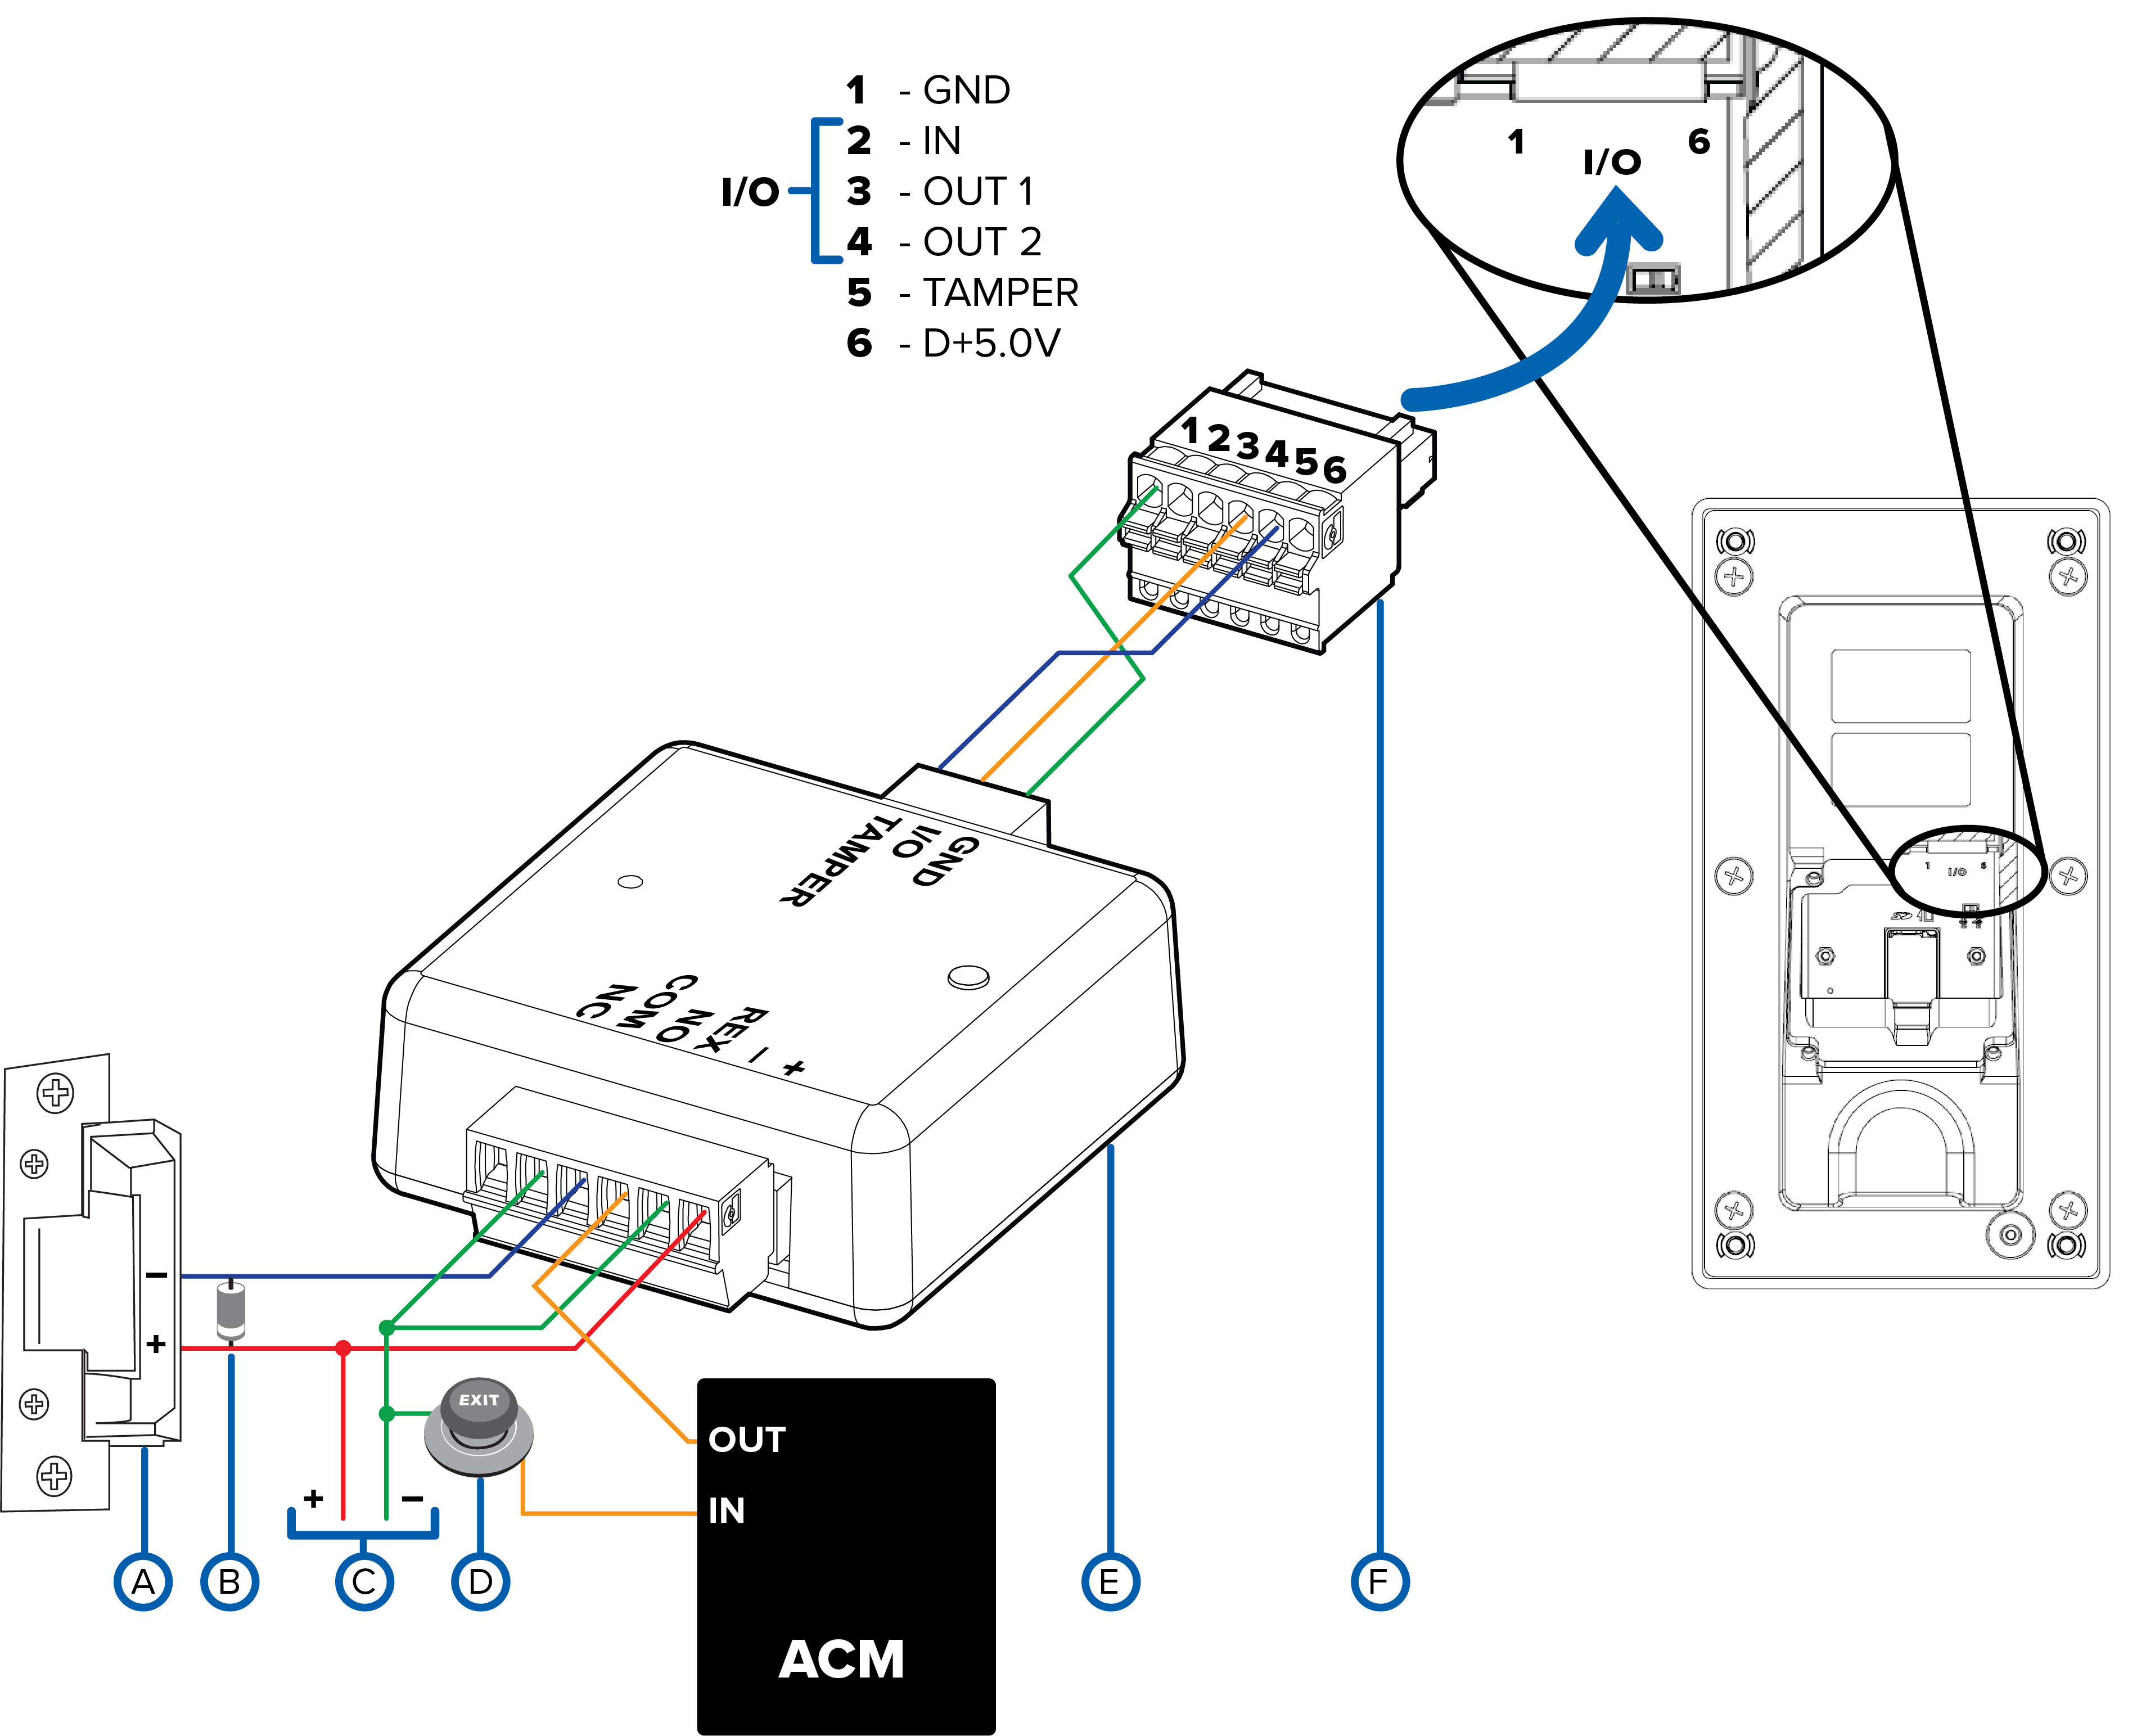 Wiring For A Door Already Managed By An Acm System